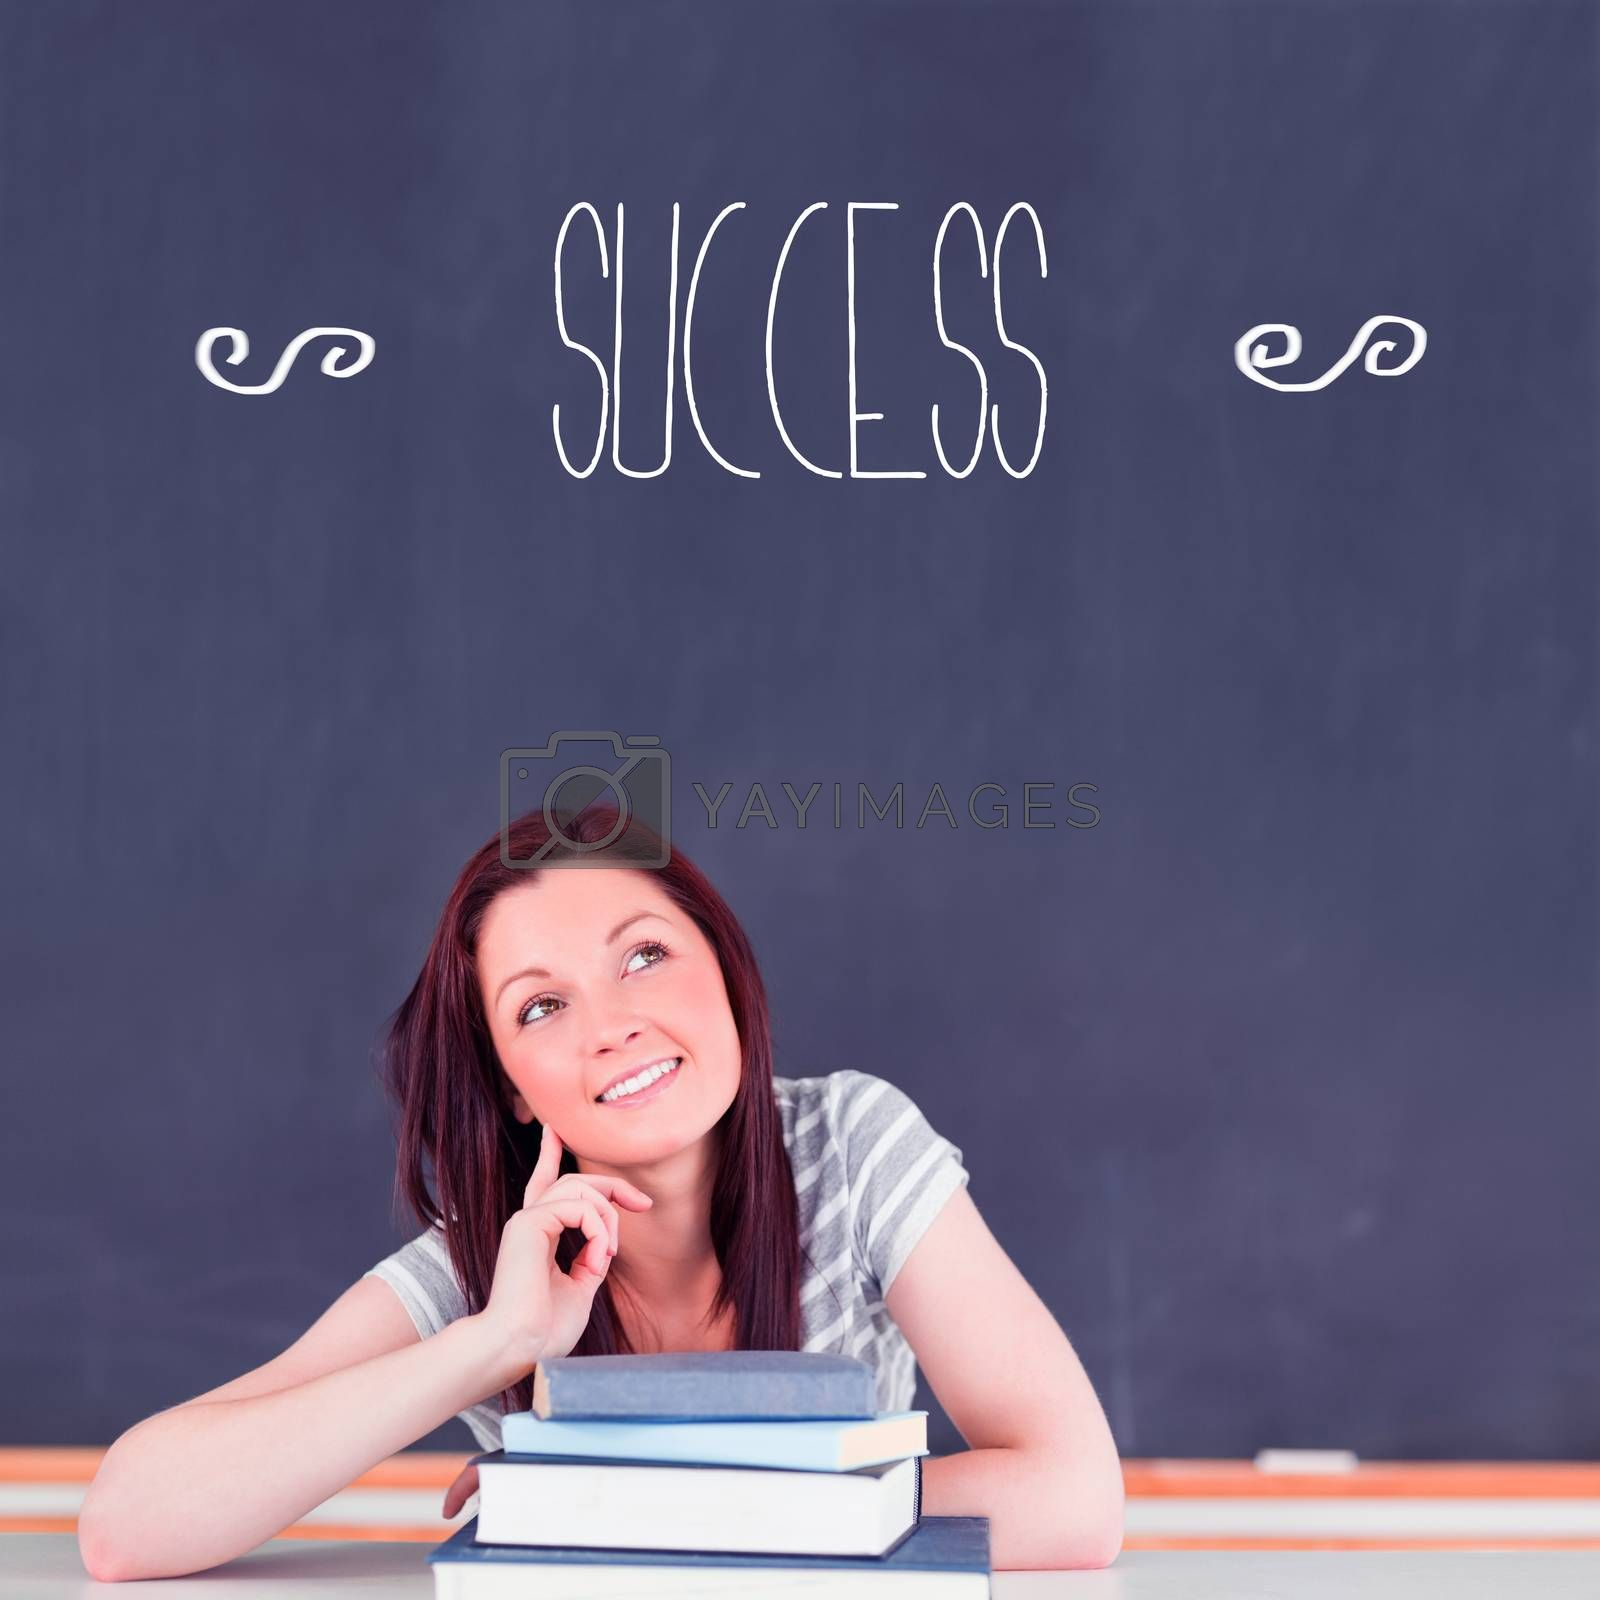 The word success against student thinking in classroom